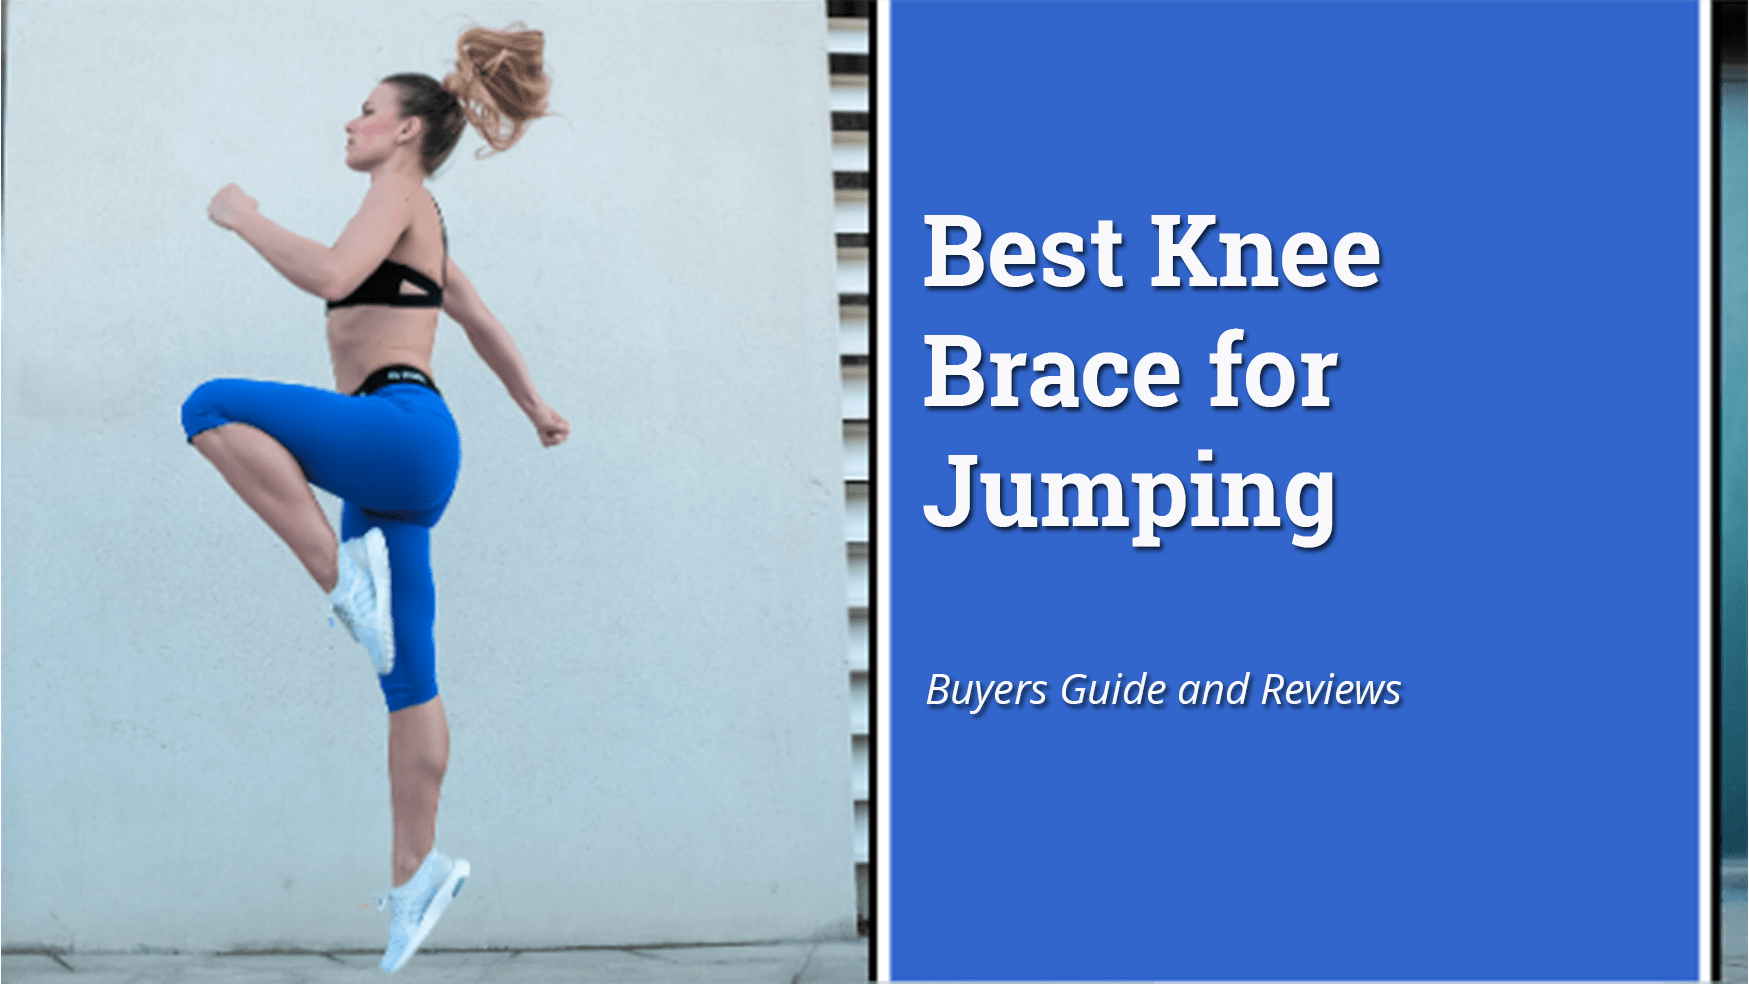 Best Knee Brace for Jumping